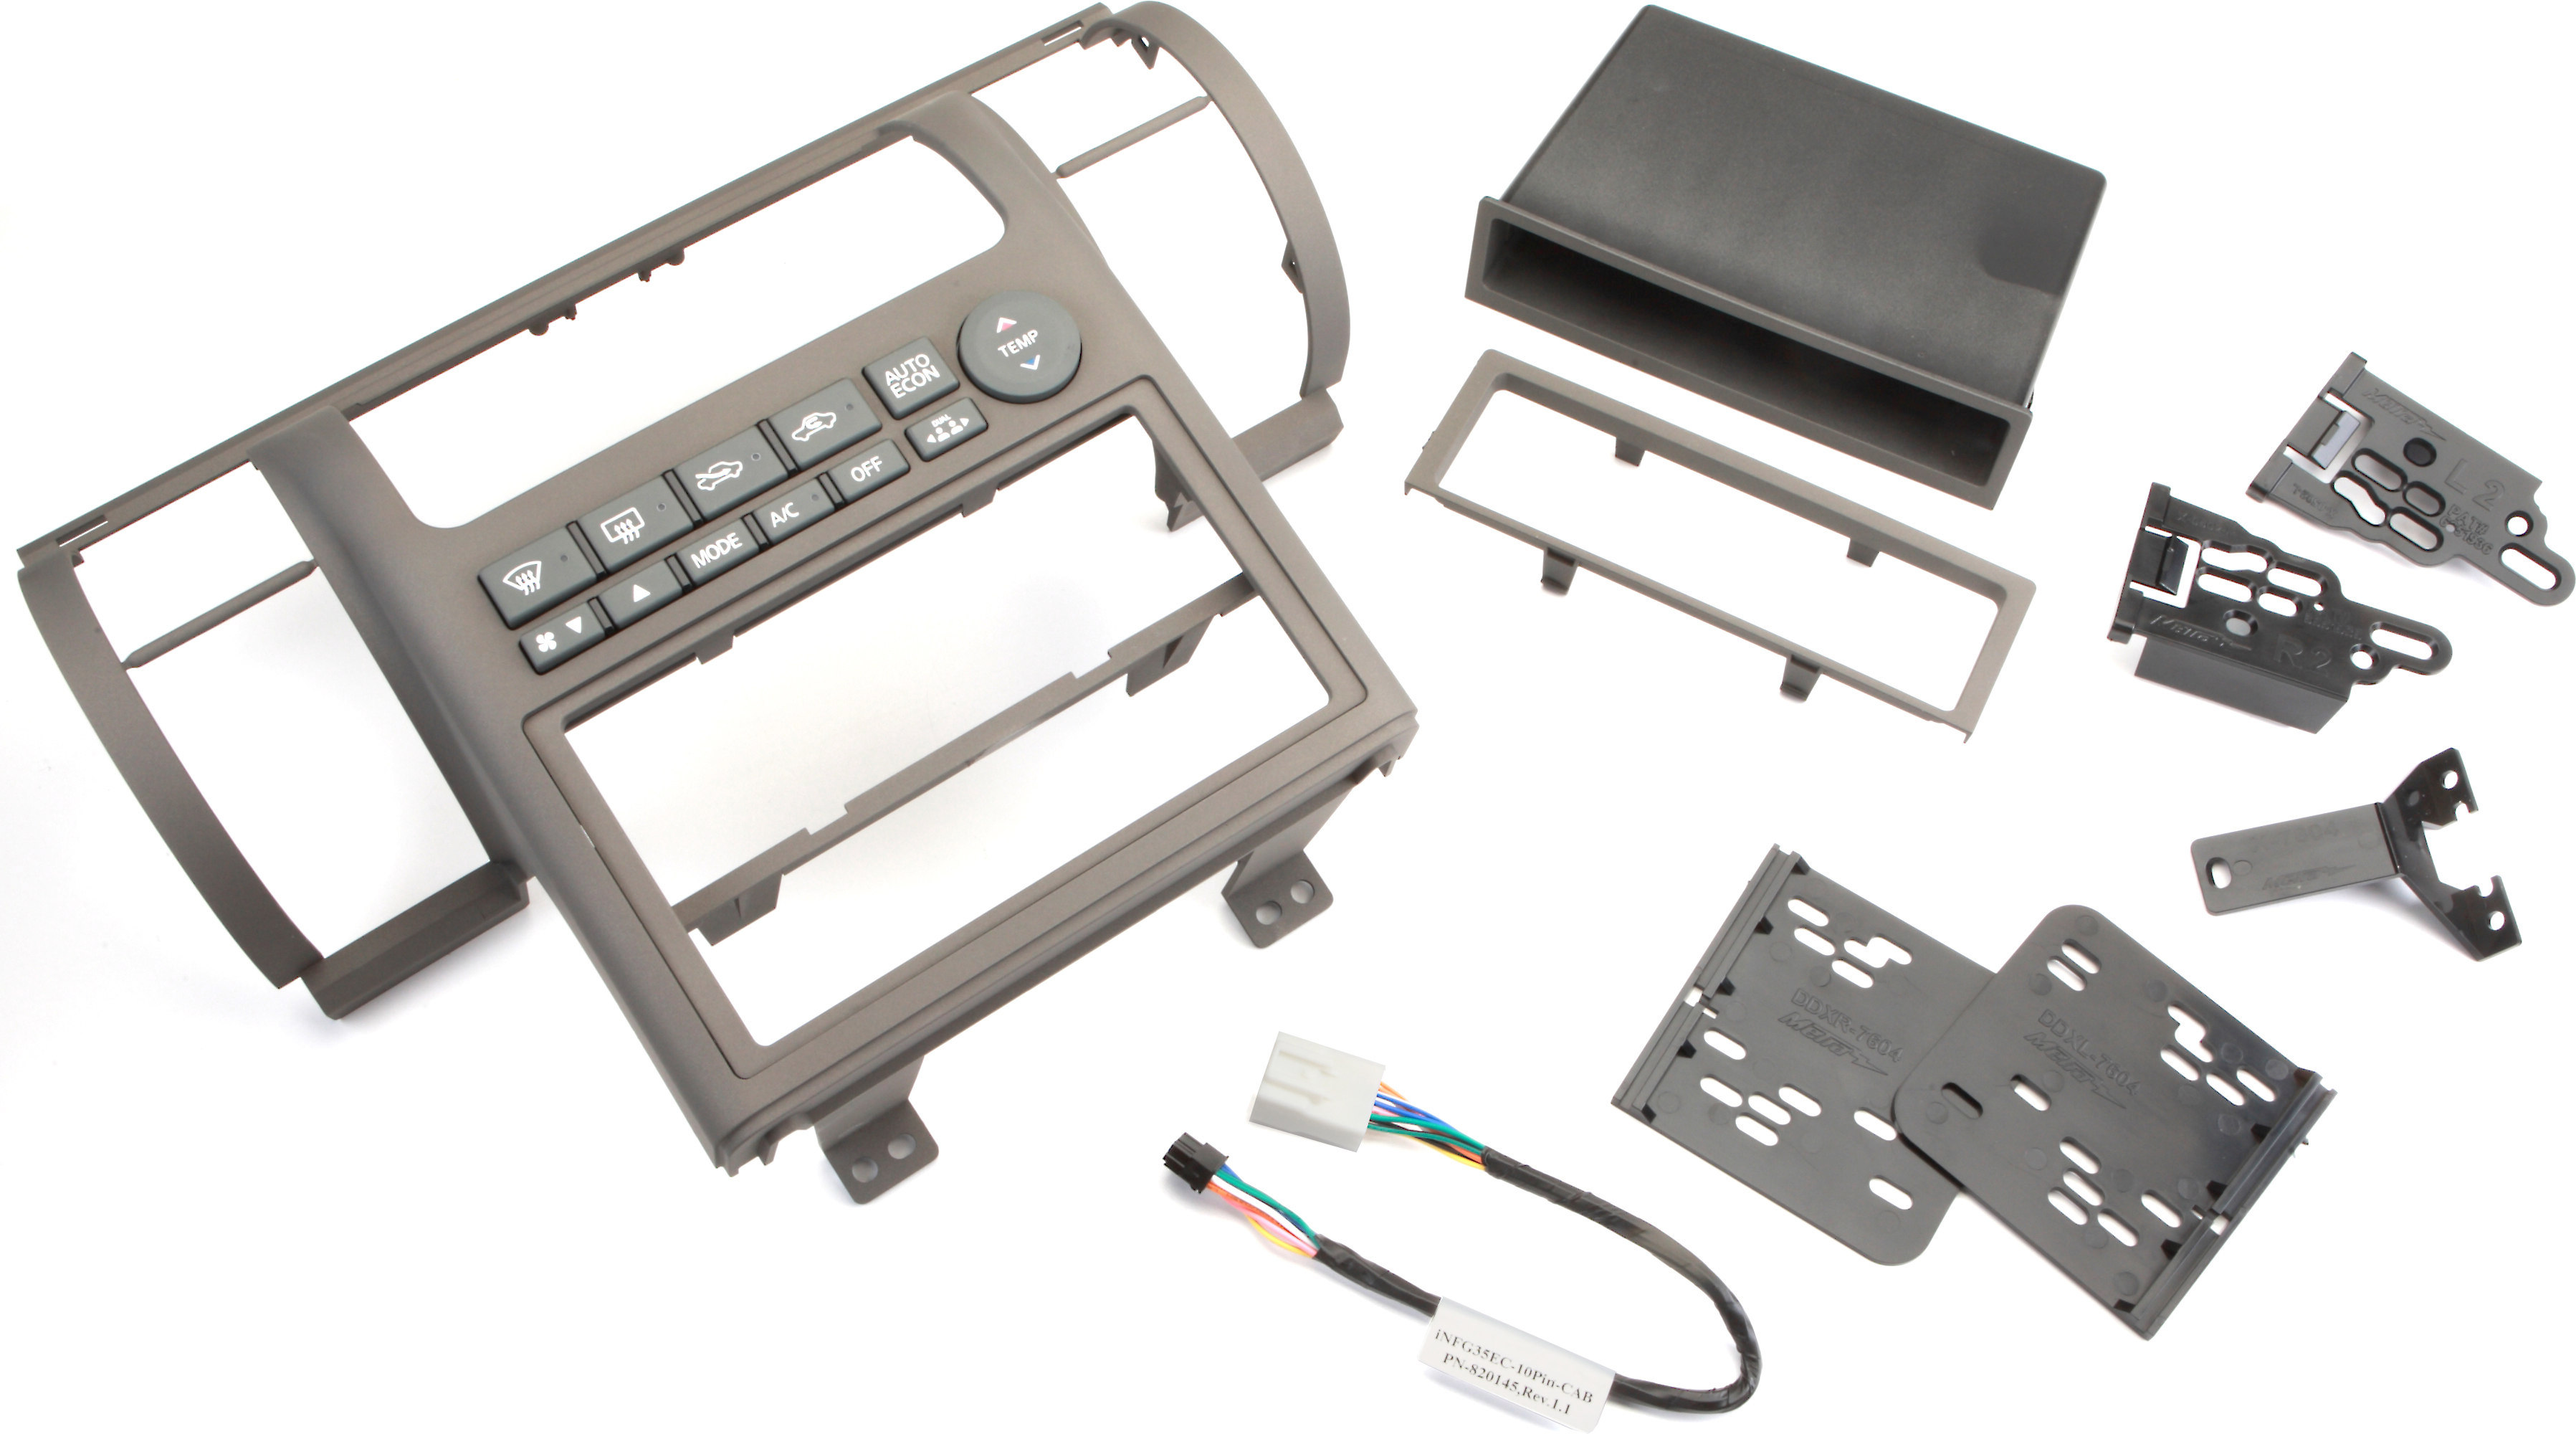 Metra 99 7604 Dash Kit Tan Install A New Single Din Or Double Car Stereo In Your 2003 04 Infiniti G35 At Crutchfield